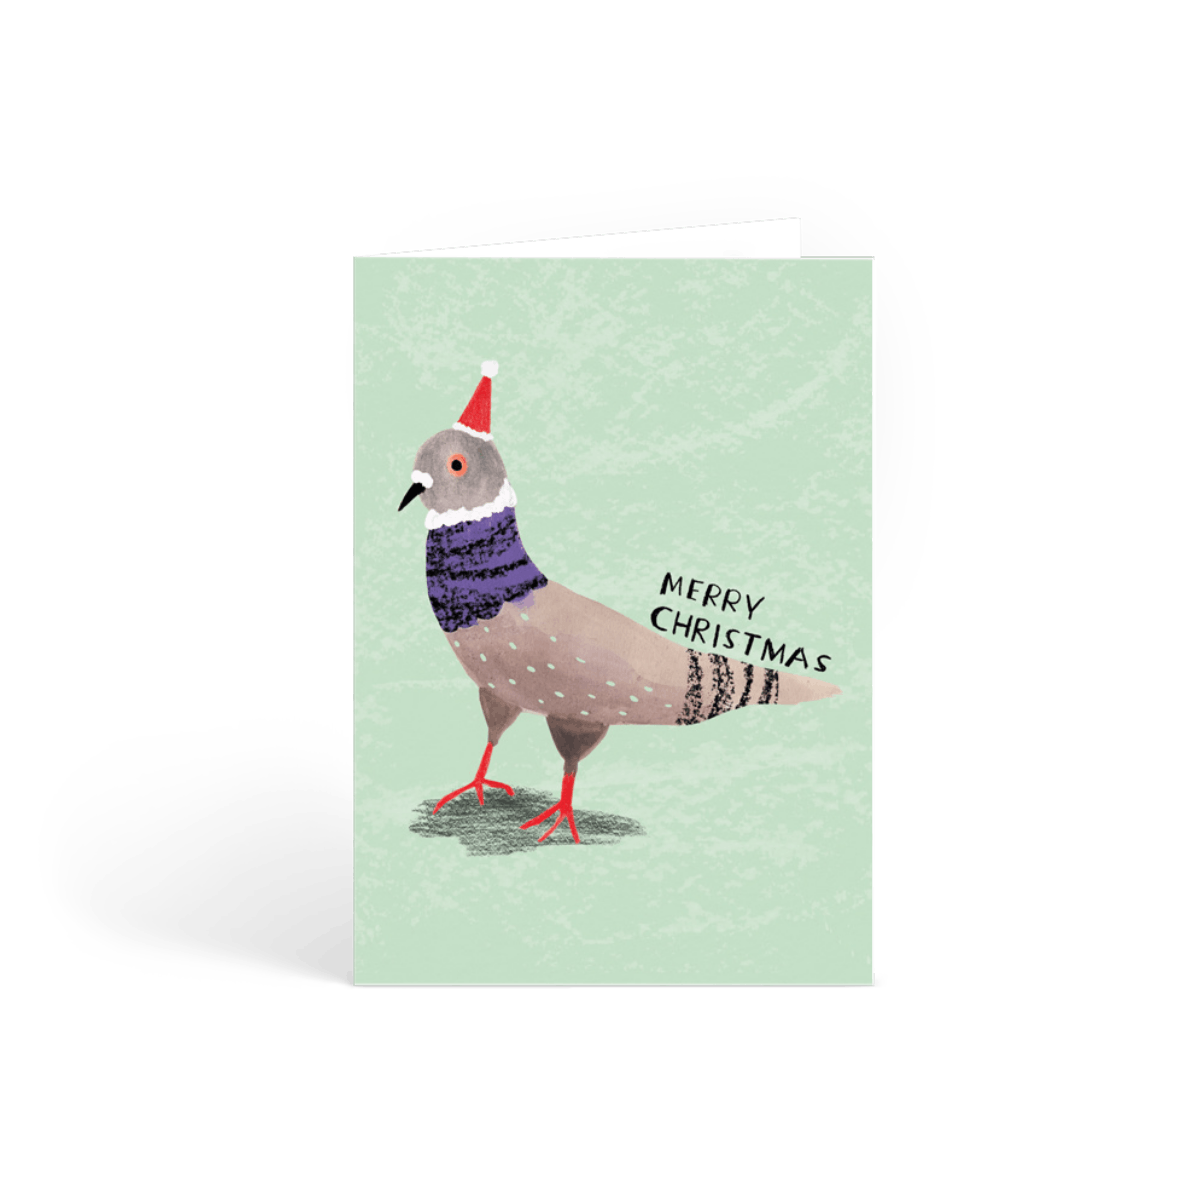 Https%3a%2f%2fwww.papier.com%2fproduct image%2f24381%2f2%2fchristmas pigeon 6102 front 1498142798.png?ixlib=rb 1.1